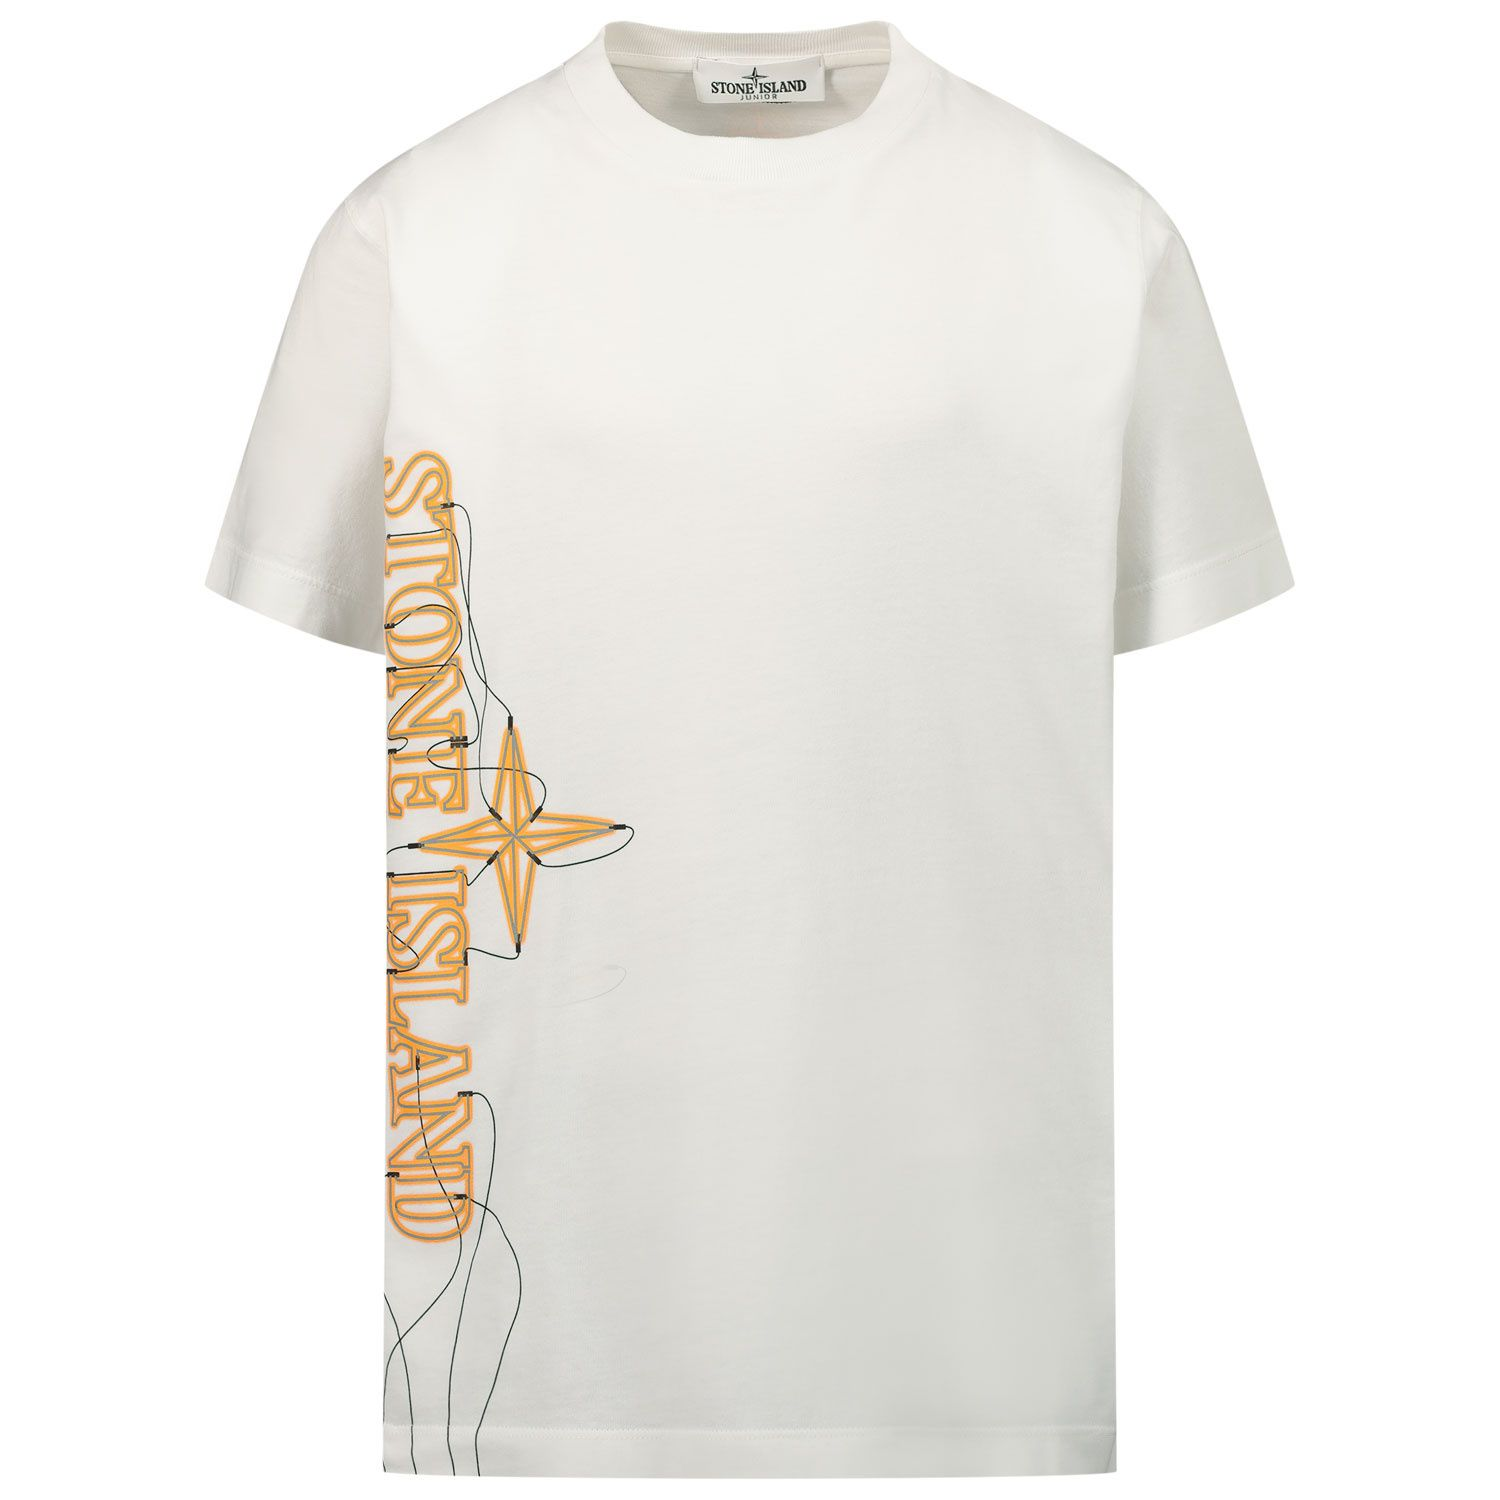 Picture of Stone Island 21059 kids t-shirt white